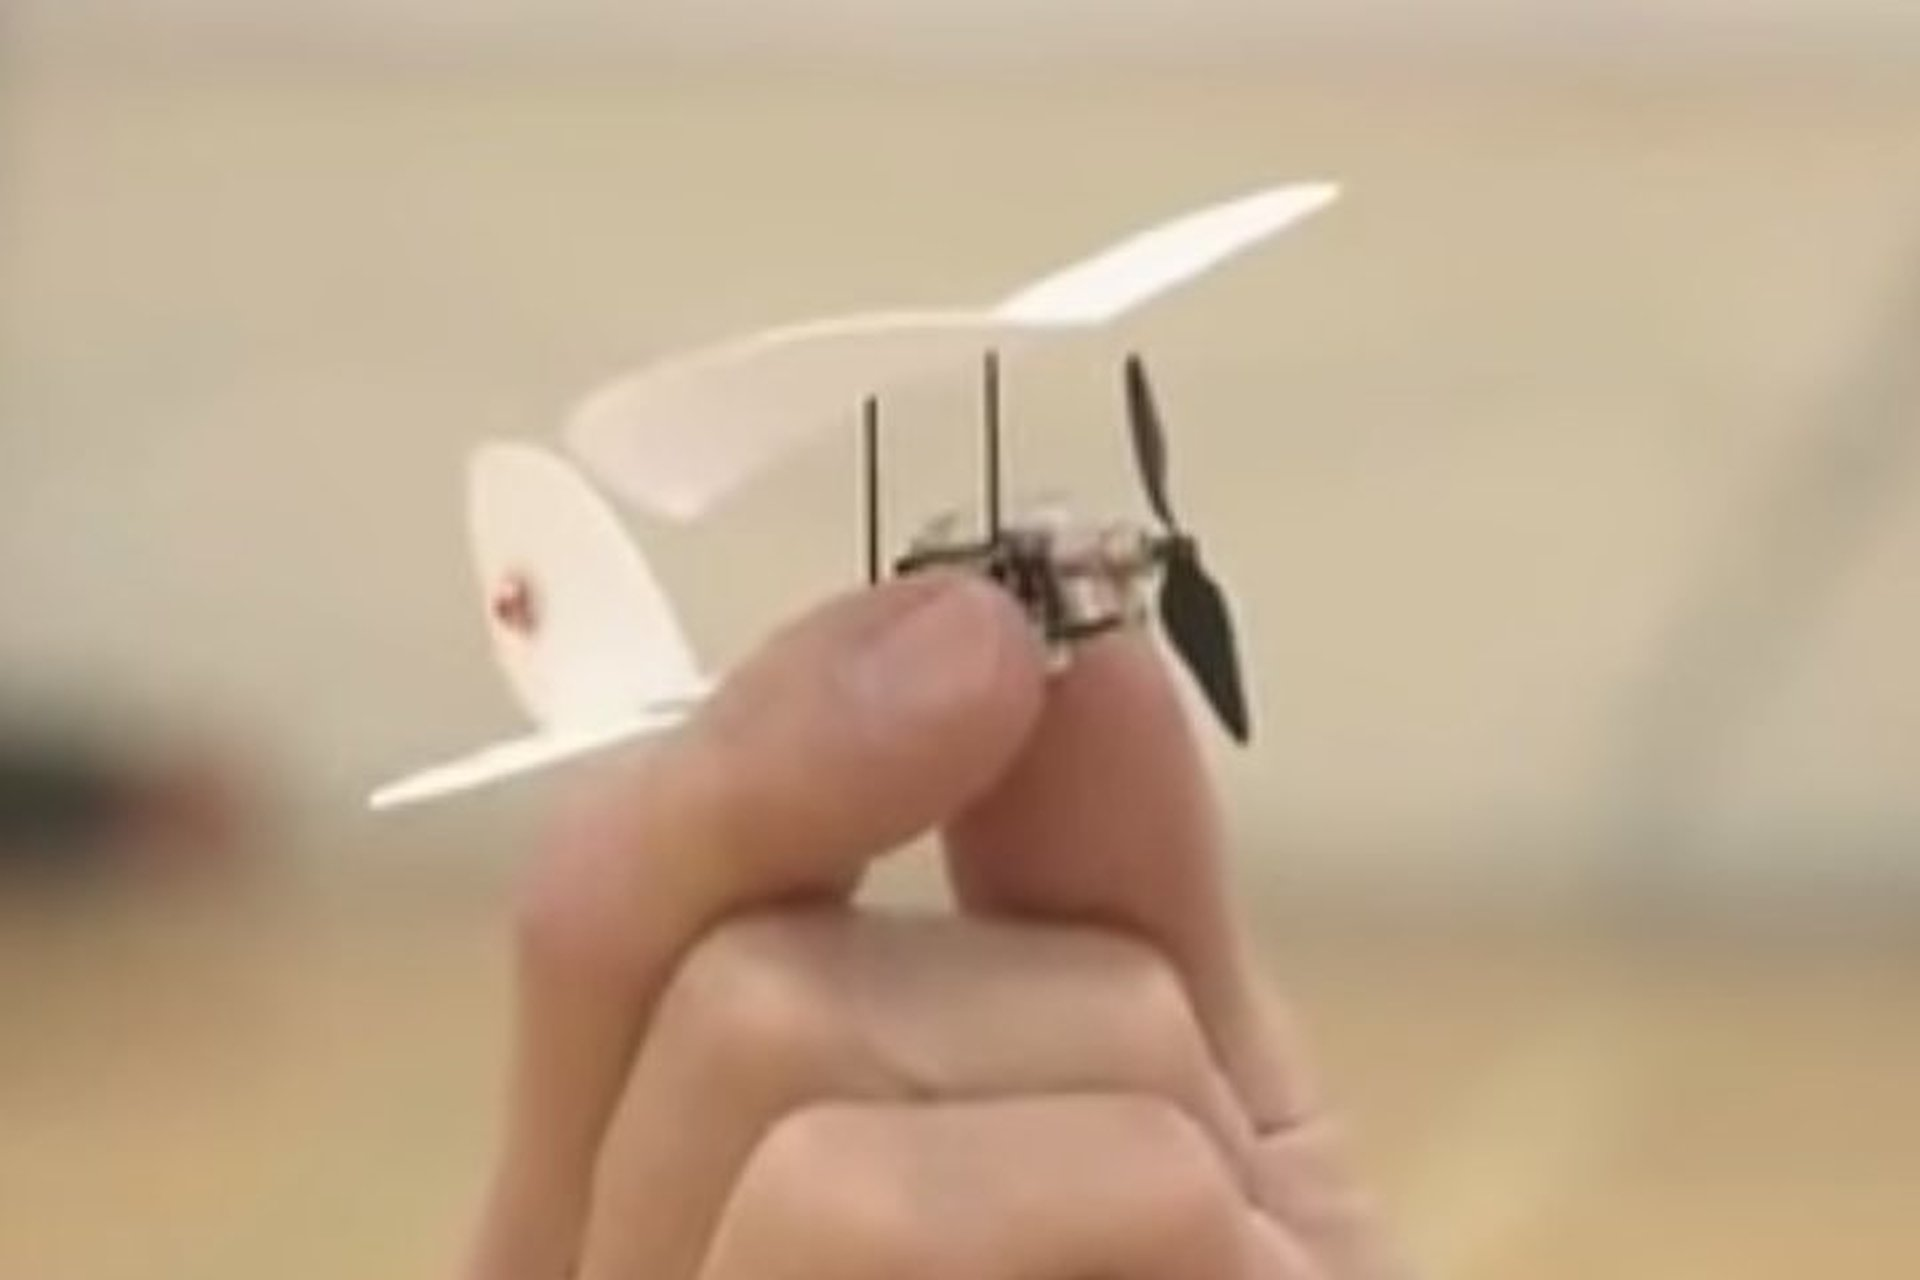 This is the World's Smallest Remote Control Aircraft [Video]